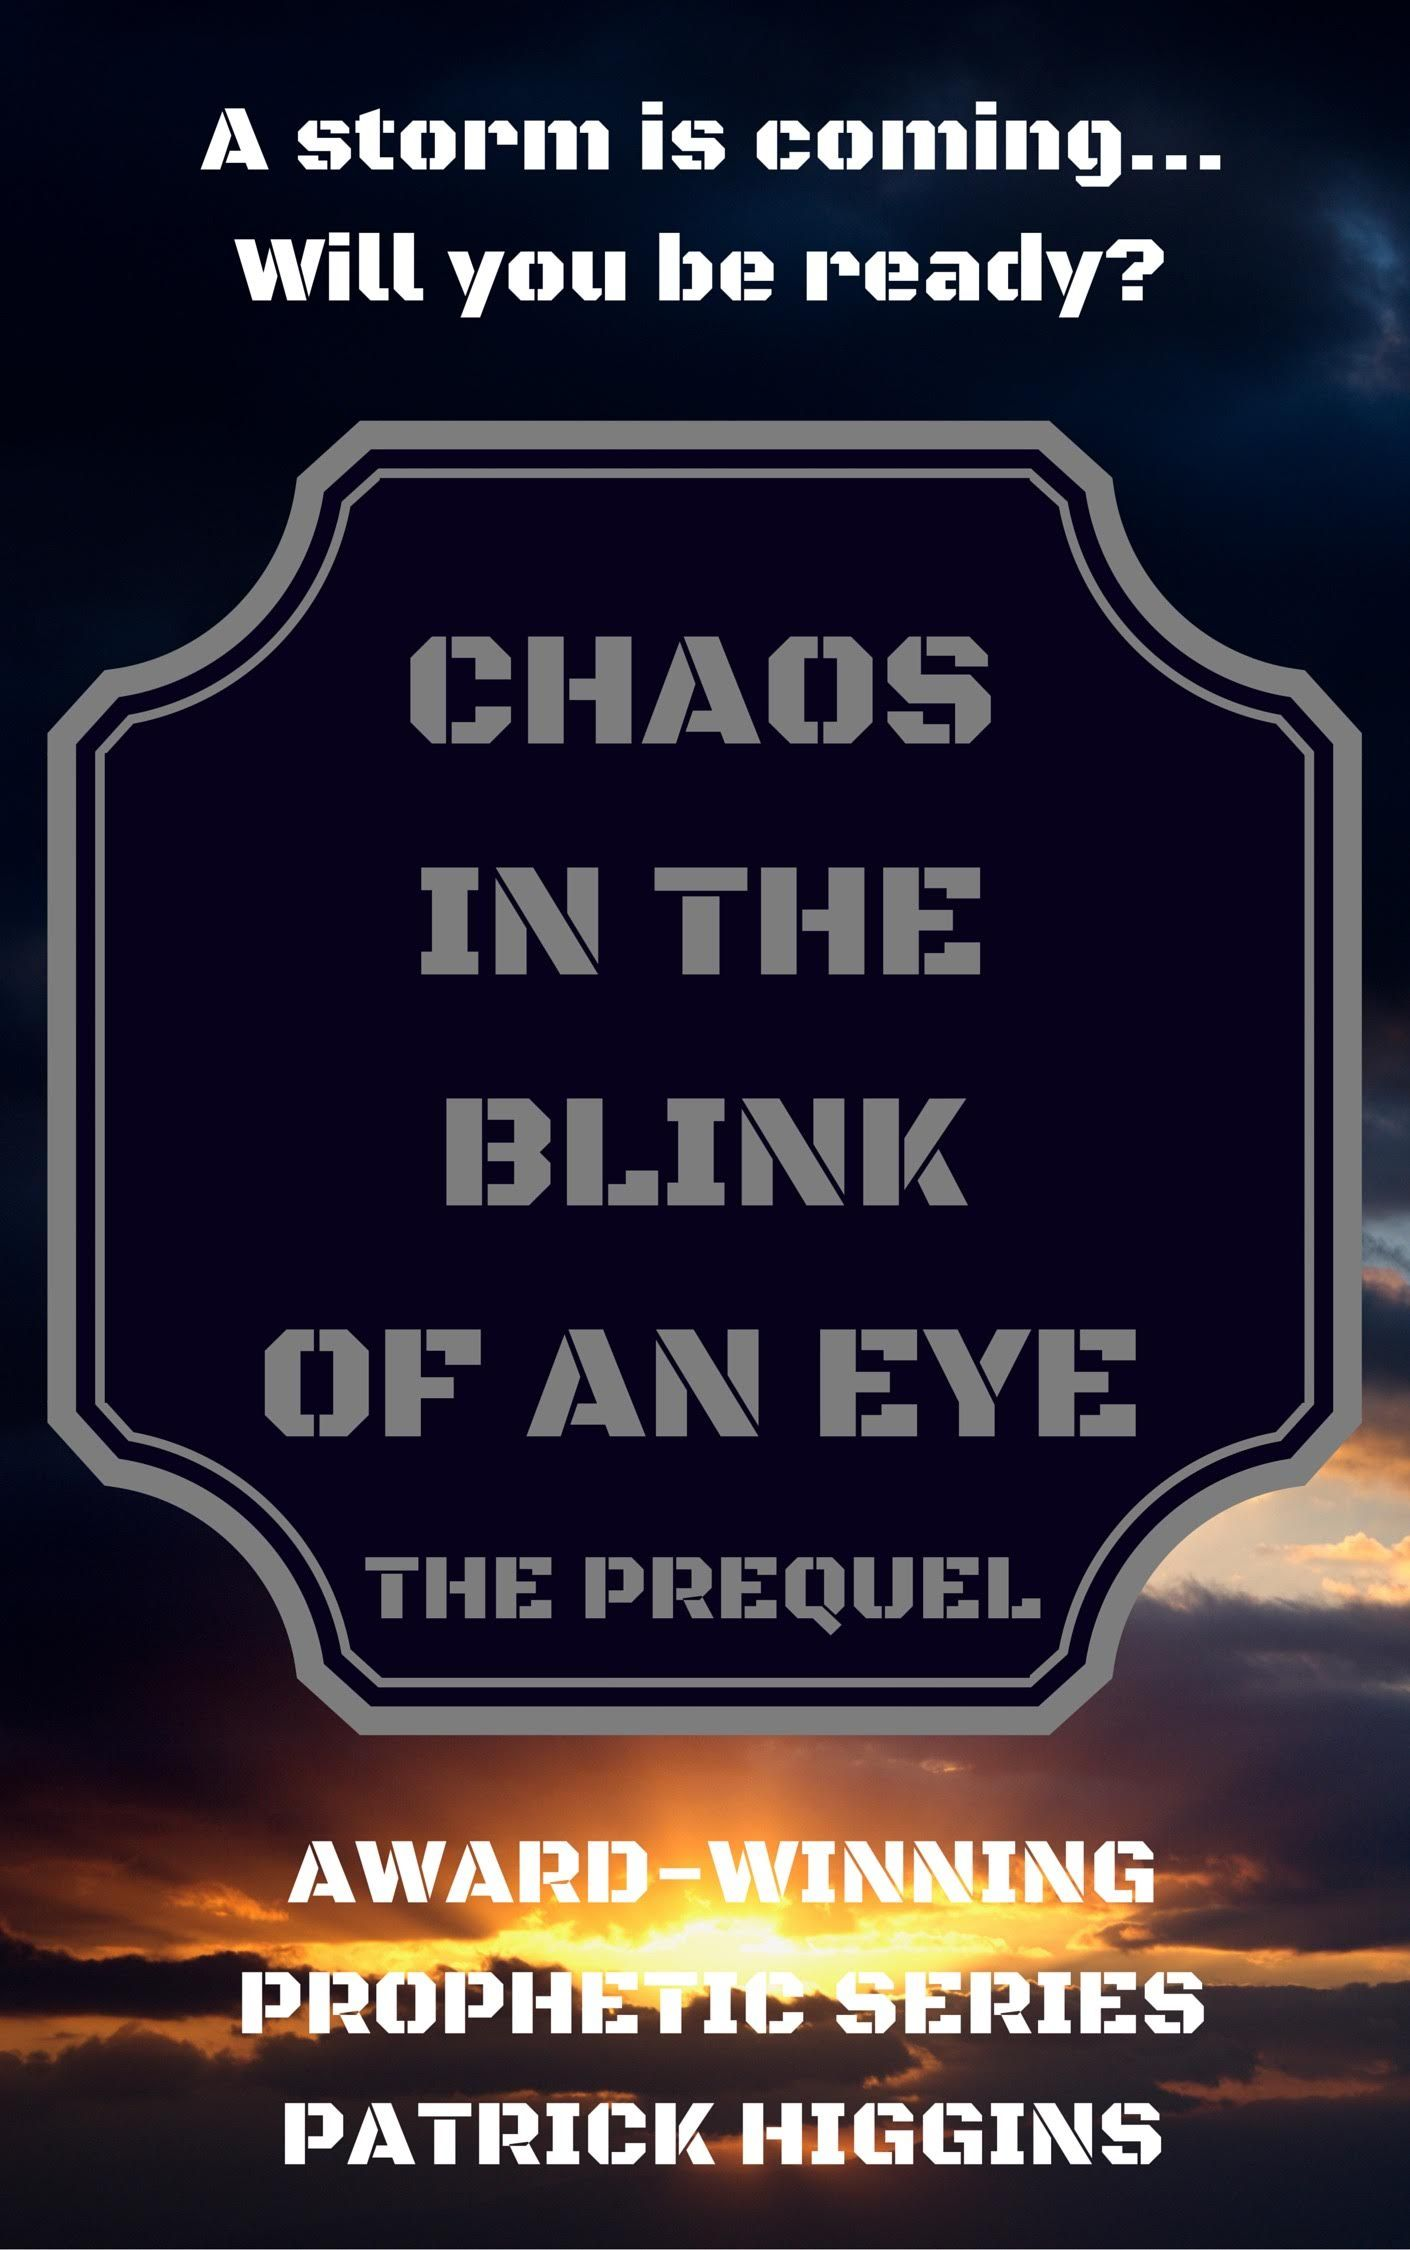 Chaos In The Blink Of An Eye by Patrick Higgins. A storm is coming...Will you be ready?. $0.99 http://www.ebooksoda.com/ebook-deals/chaos-in-the-blink-of-an-eye-by-patrick-higgins